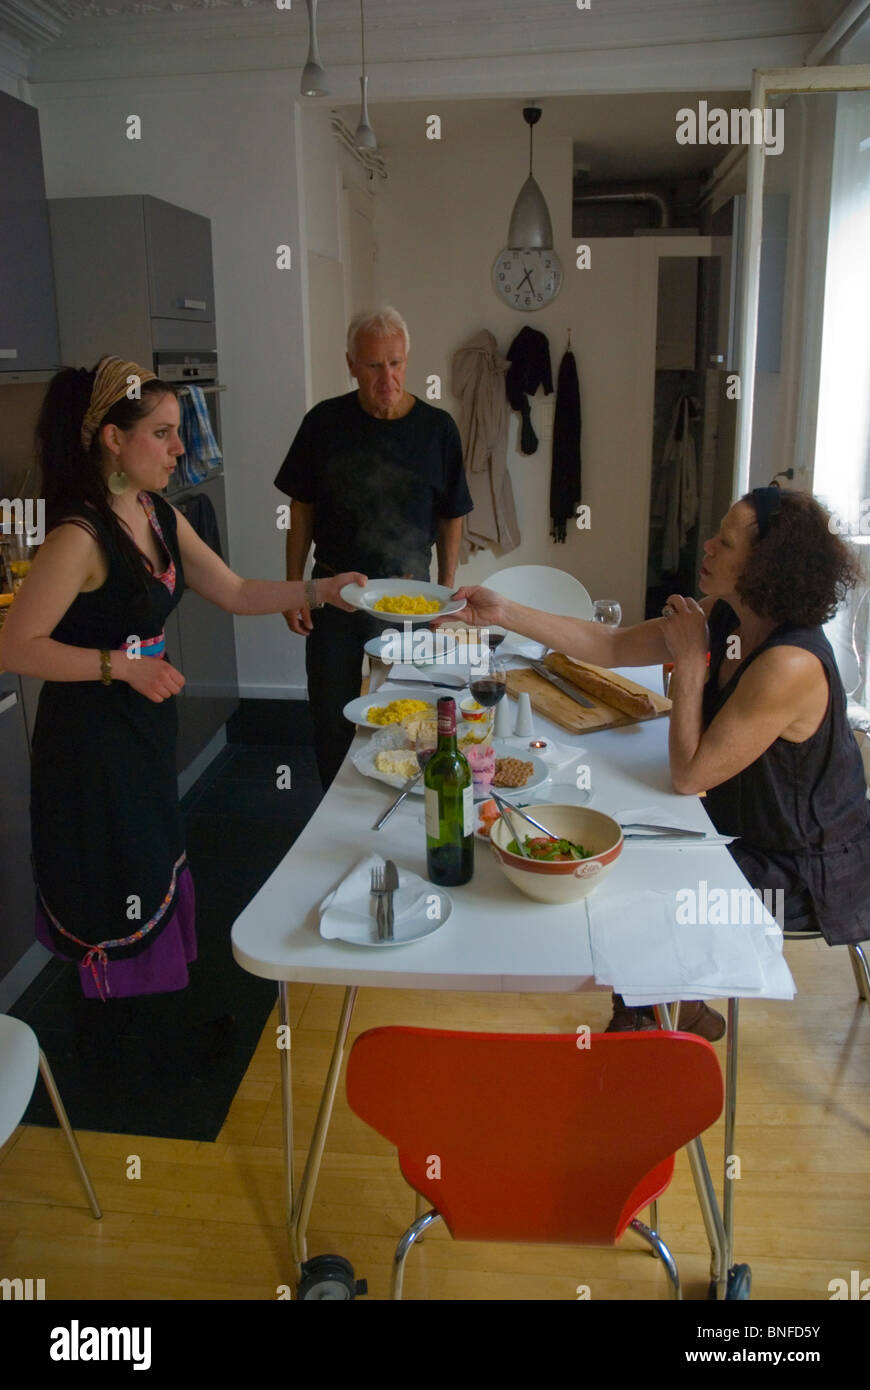 Australian having a meal in a private flat in central Paris France Europe - Stock Image